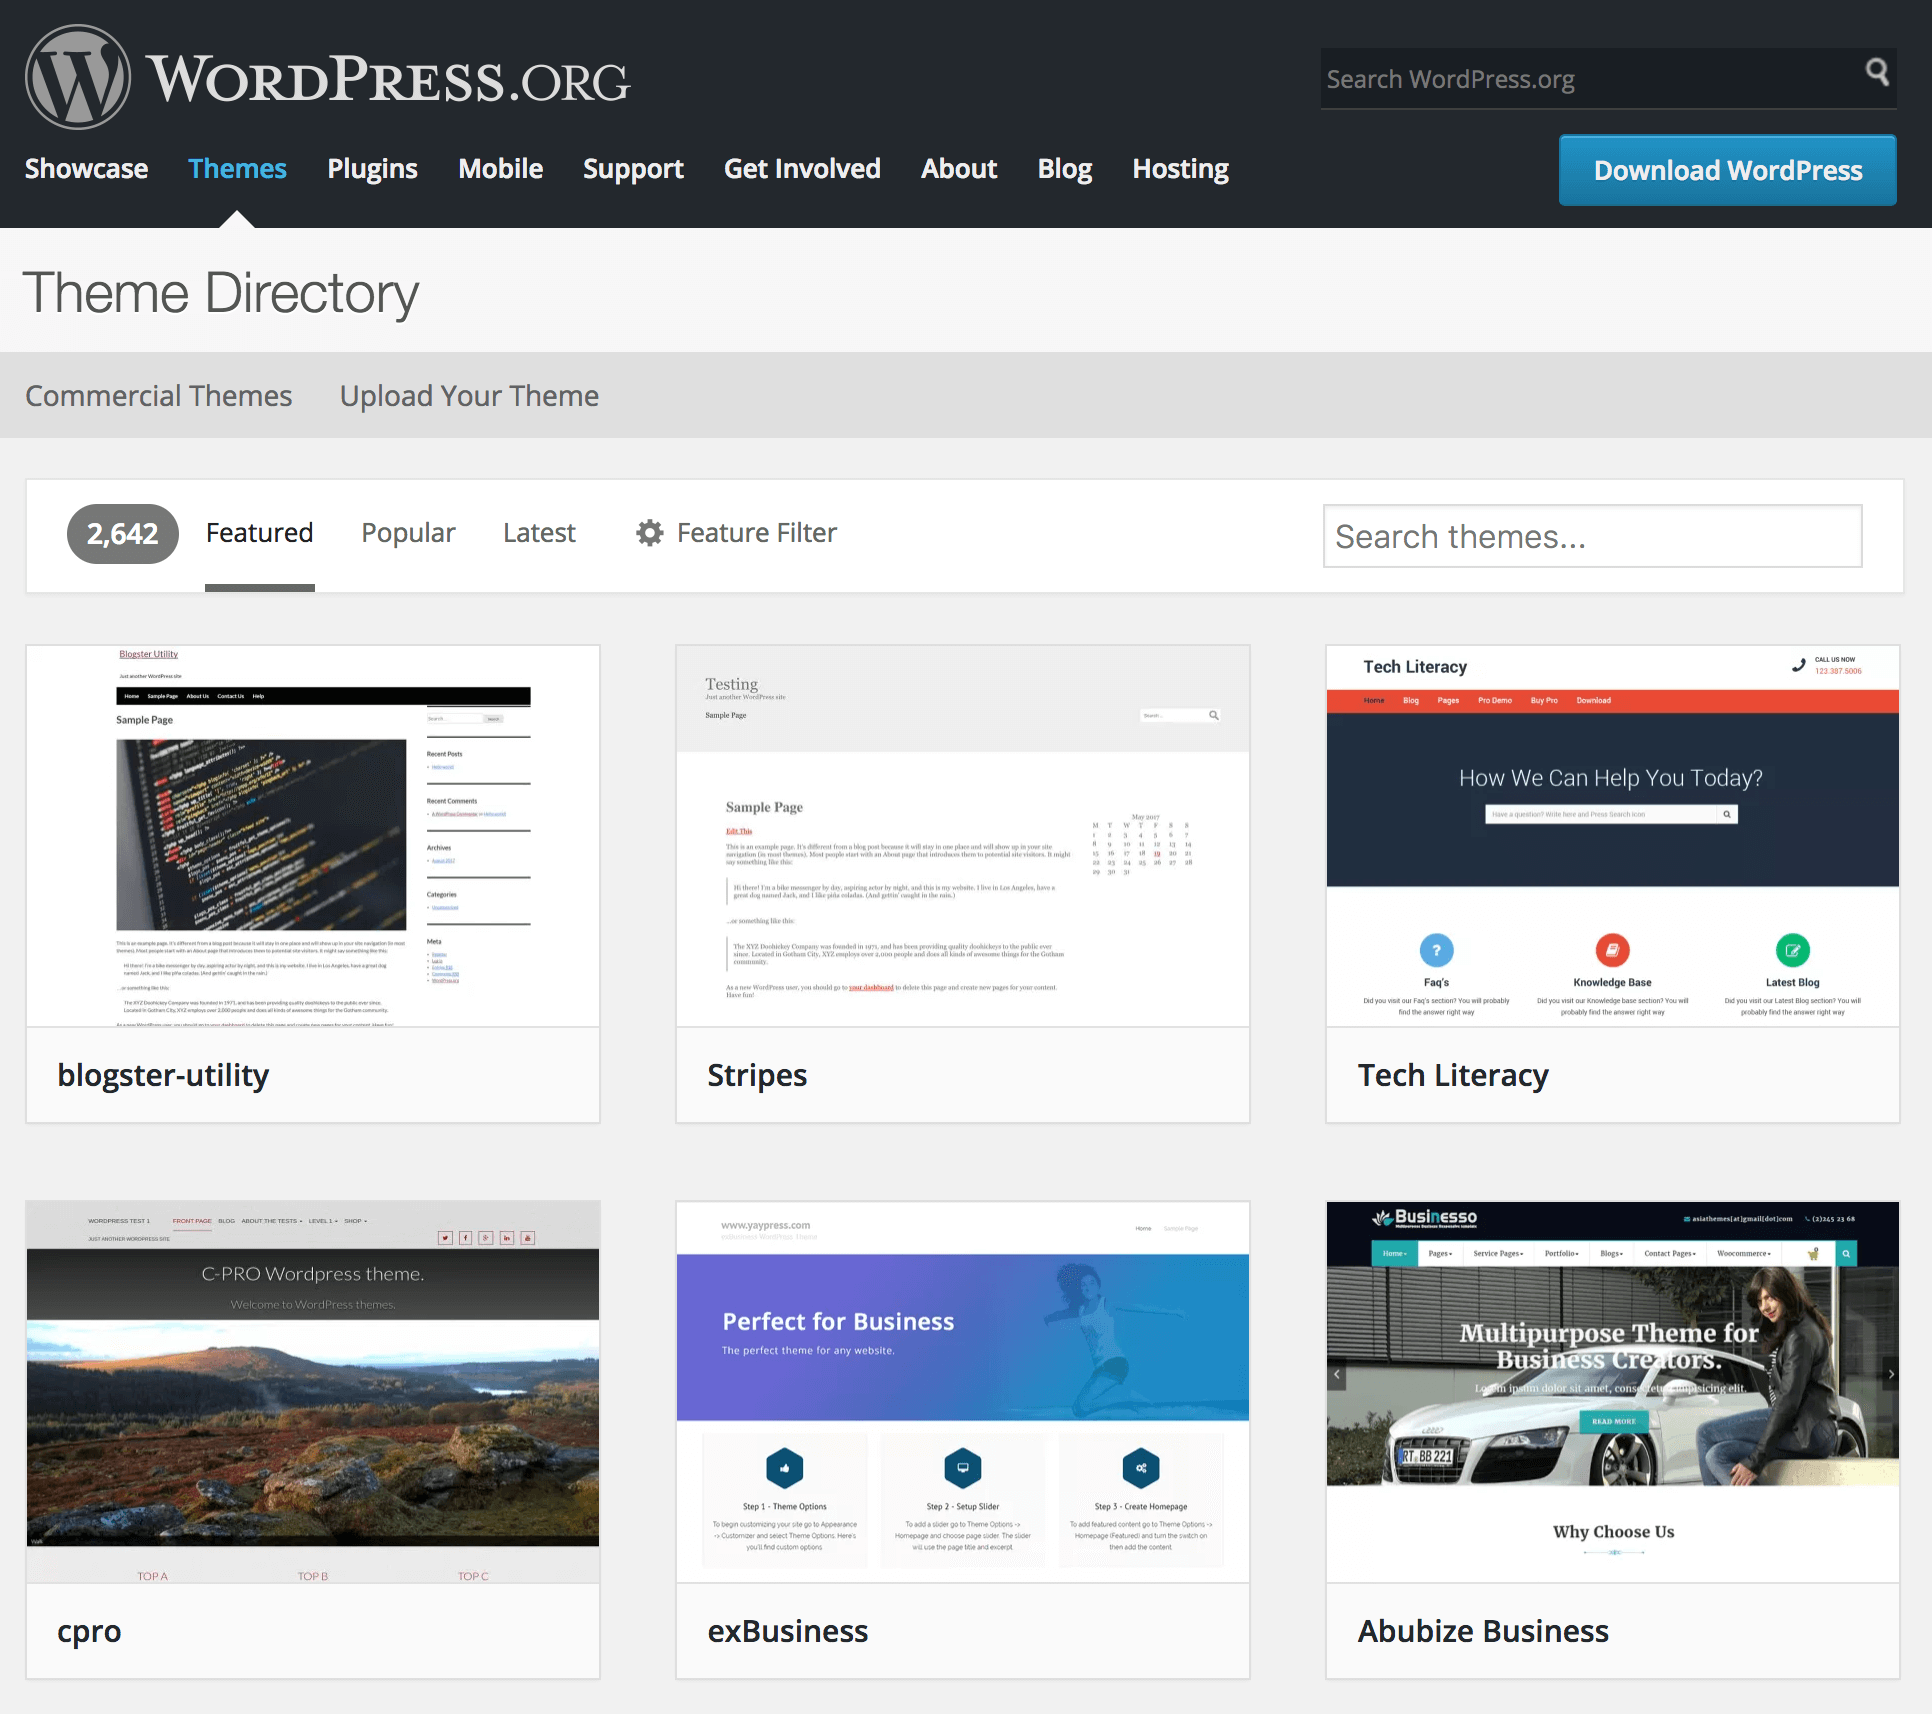 How to Make Sure You Pick a Secure WordPress Theme